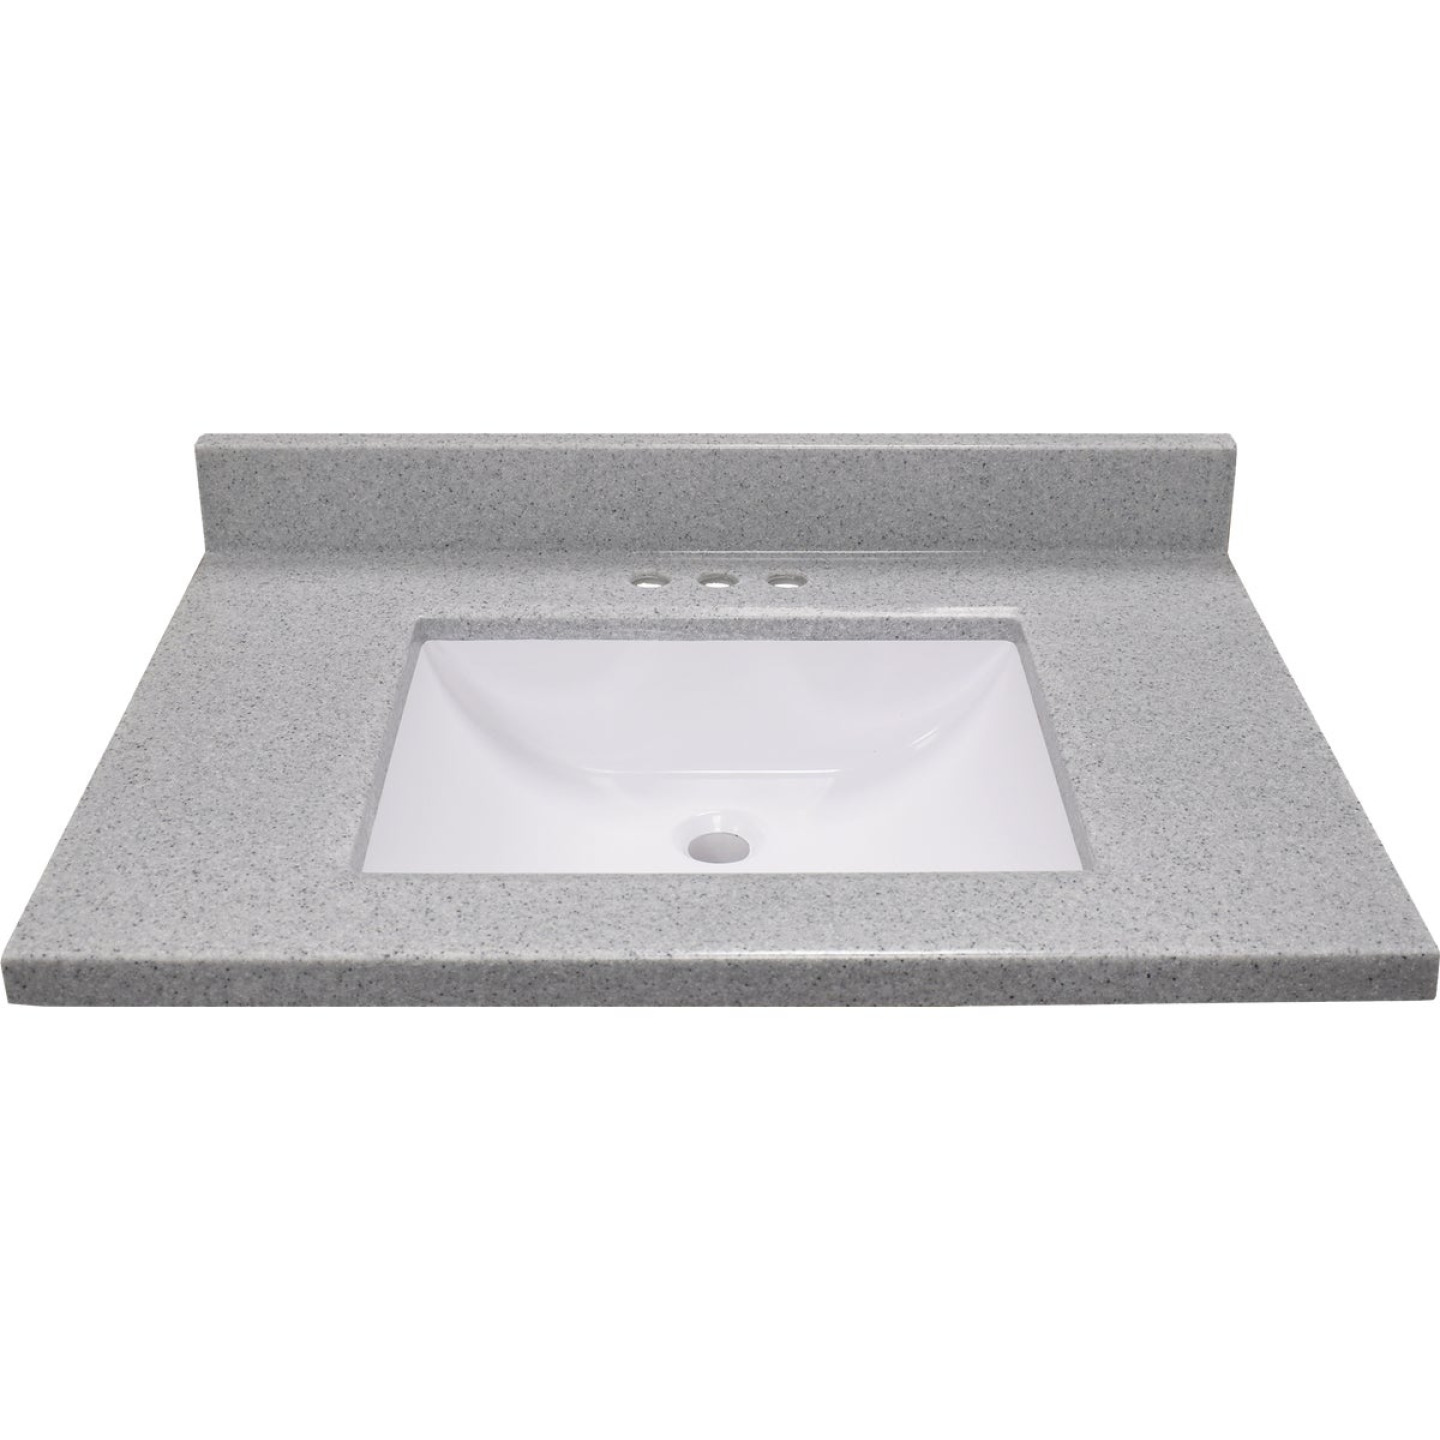 Modular Vanity Tops 31 In. W x 22 In. D Pewter Cultured Marble Vanity Top with Rectangular Wave Bowl Image 2